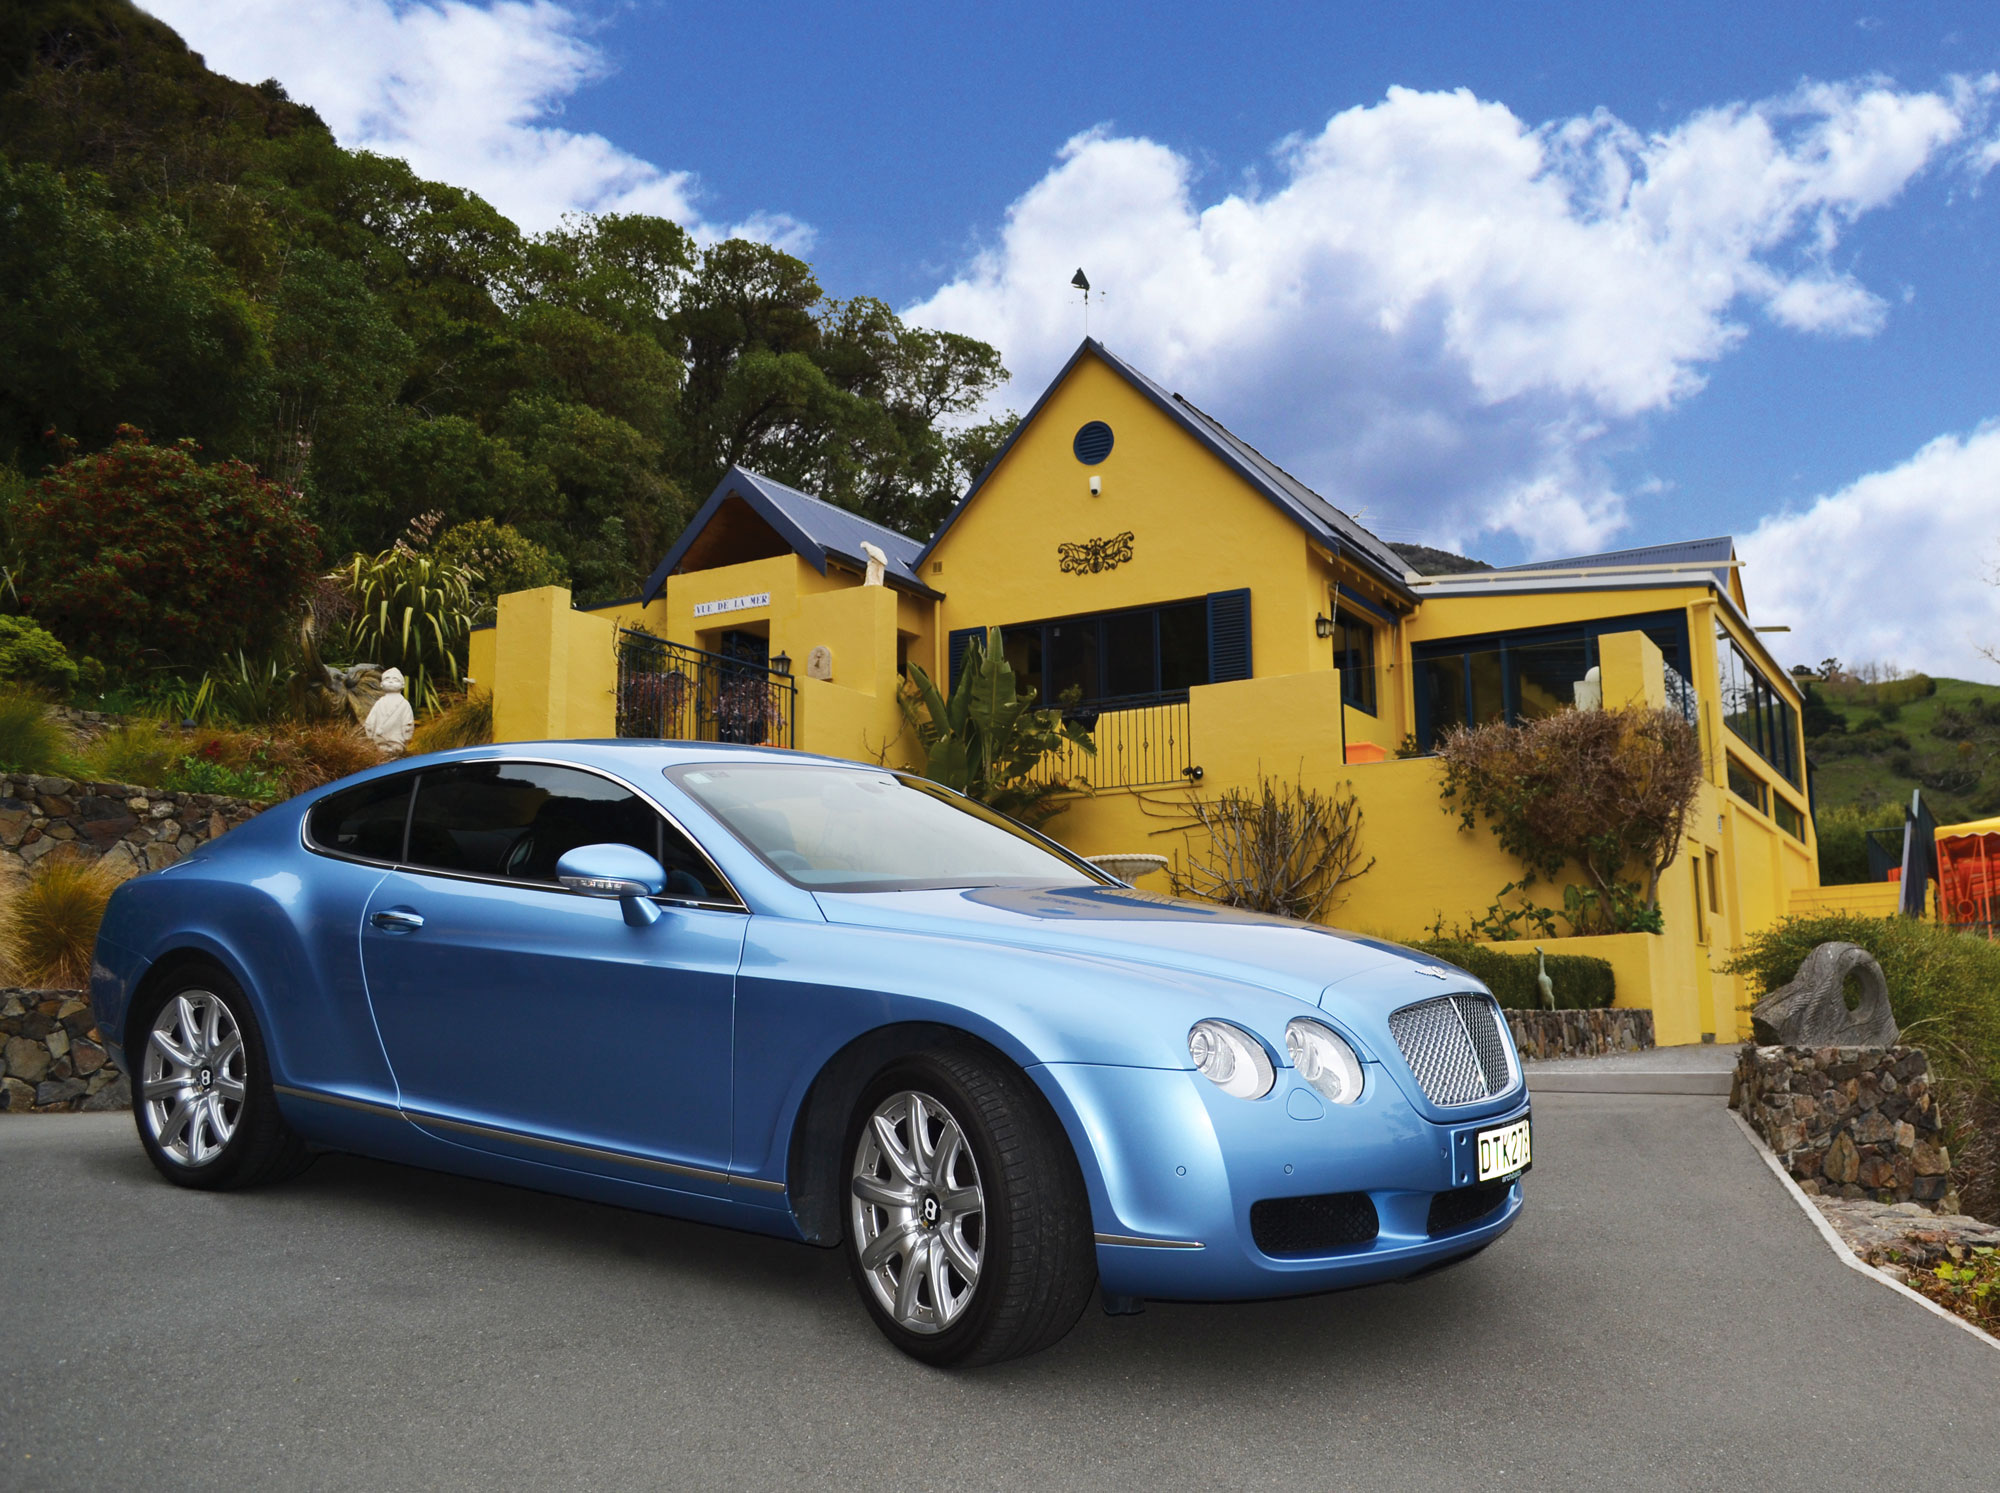 This turnkey estate in Akaroa on New Zealand's South Island has every amenity for the luxury connoisseur, from the artwork and custom furnishings, right down to the 2005 Bentley Continental GT.